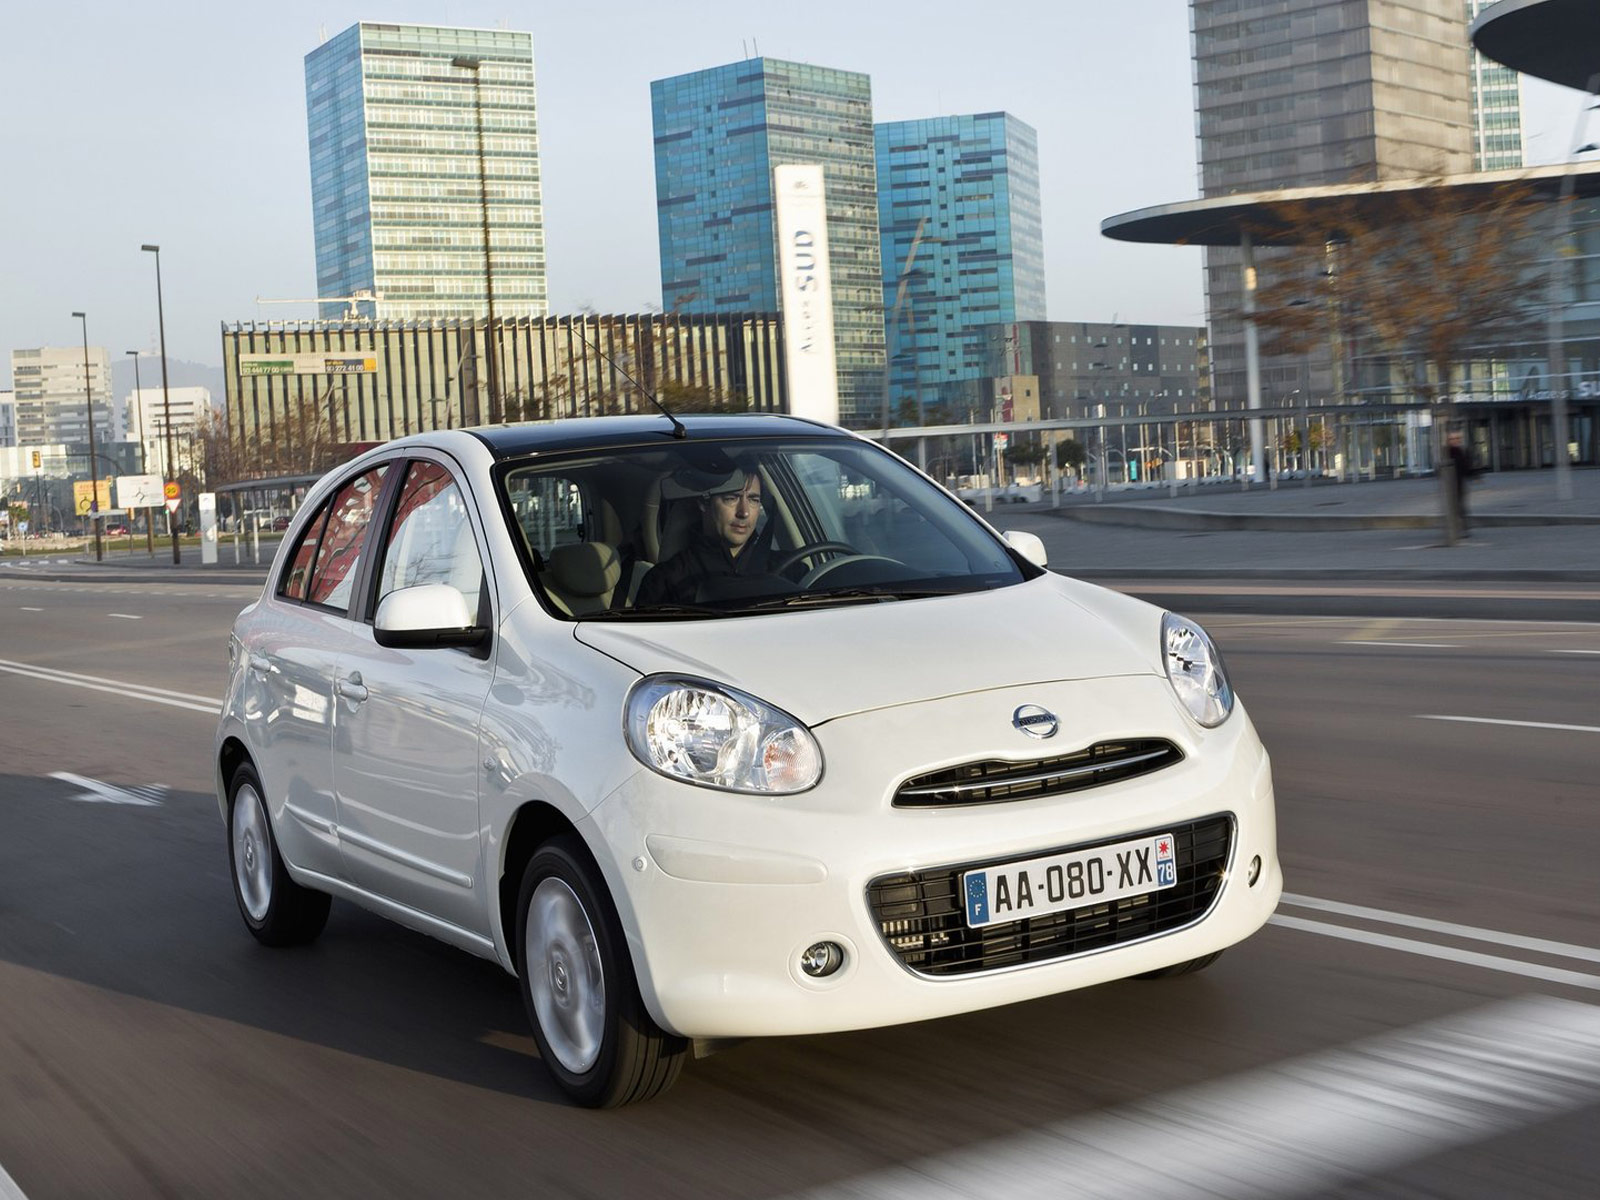 2012 nissan micra dig s japanese car photos accident lawyers. Black Bedroom Furniture Sets. Home Design Ideas